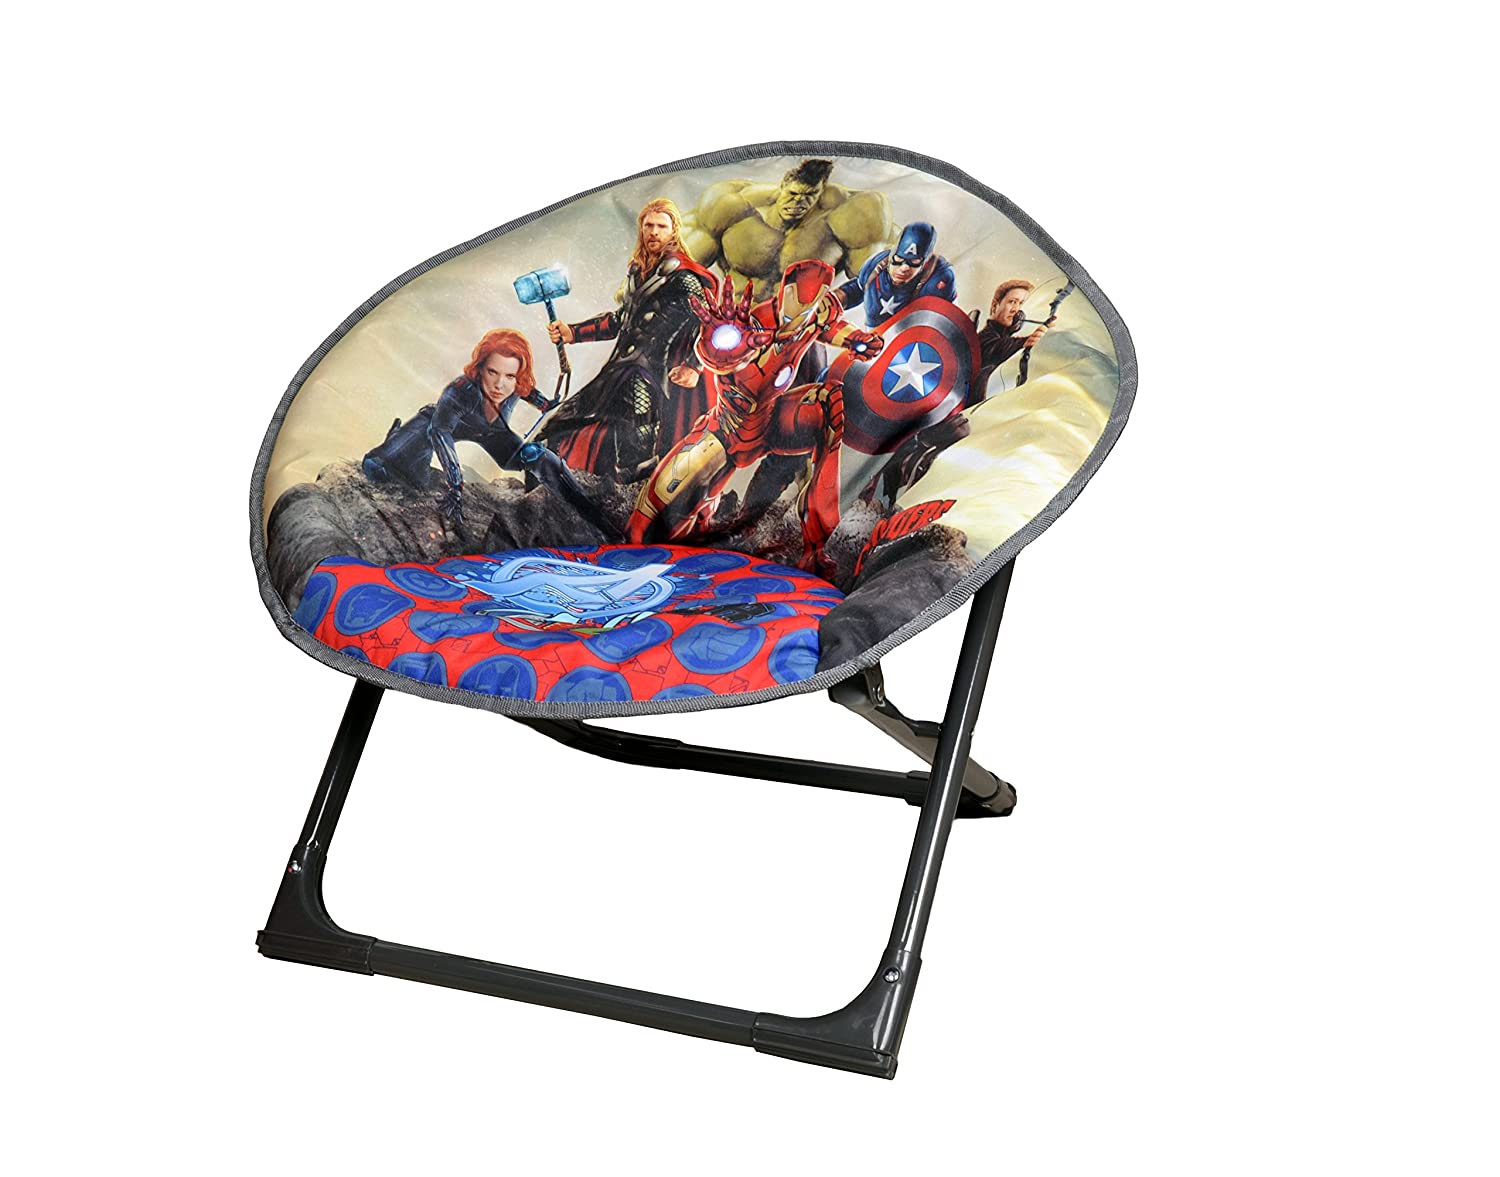 Magnificent Disney Moon Chair Avengers Folding Round Soft Padded Chair For Toddlers Kids Ocoug Best Dining Table And Chair Ideas Images Ocougorg